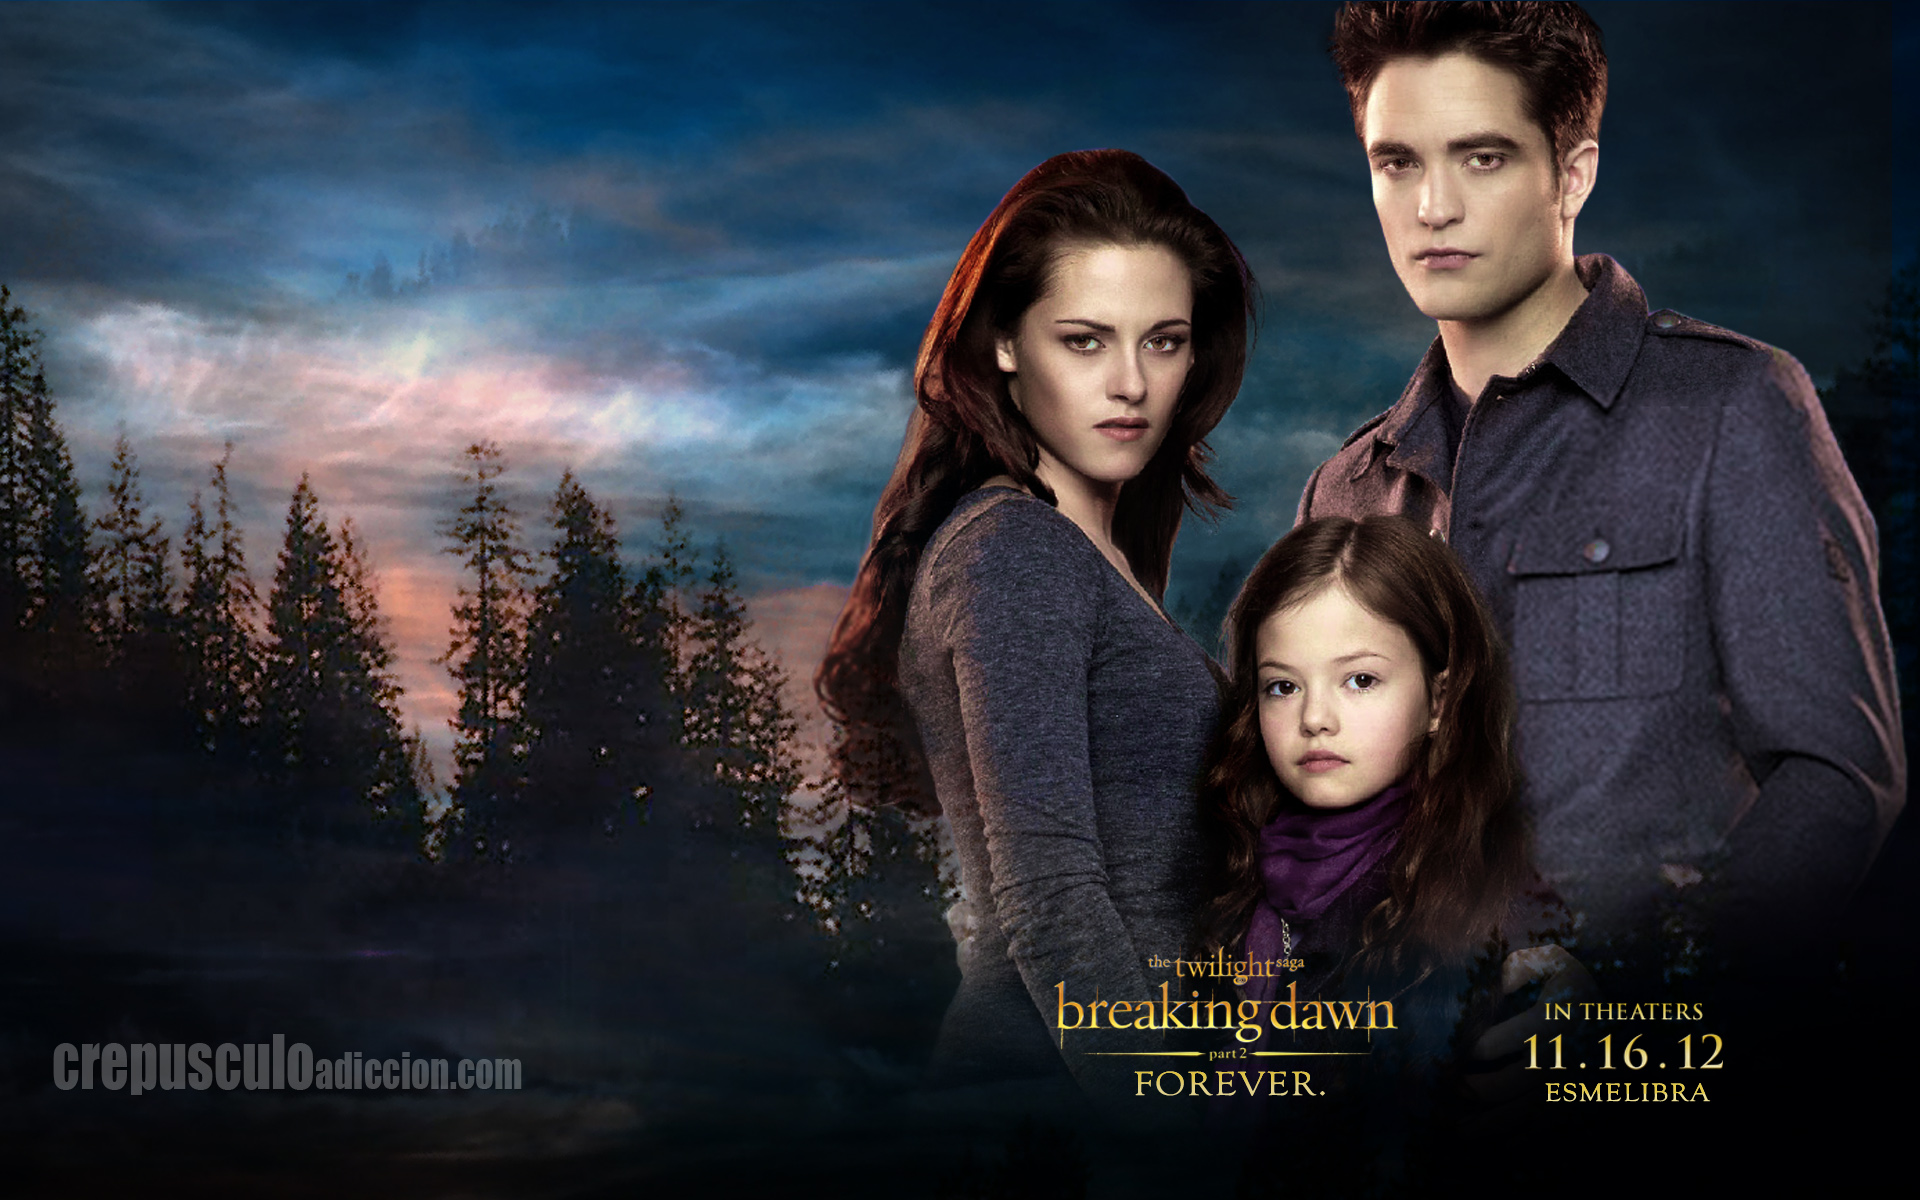 the twilight saga: breaking dawn - part 2 full hd wallpaper and